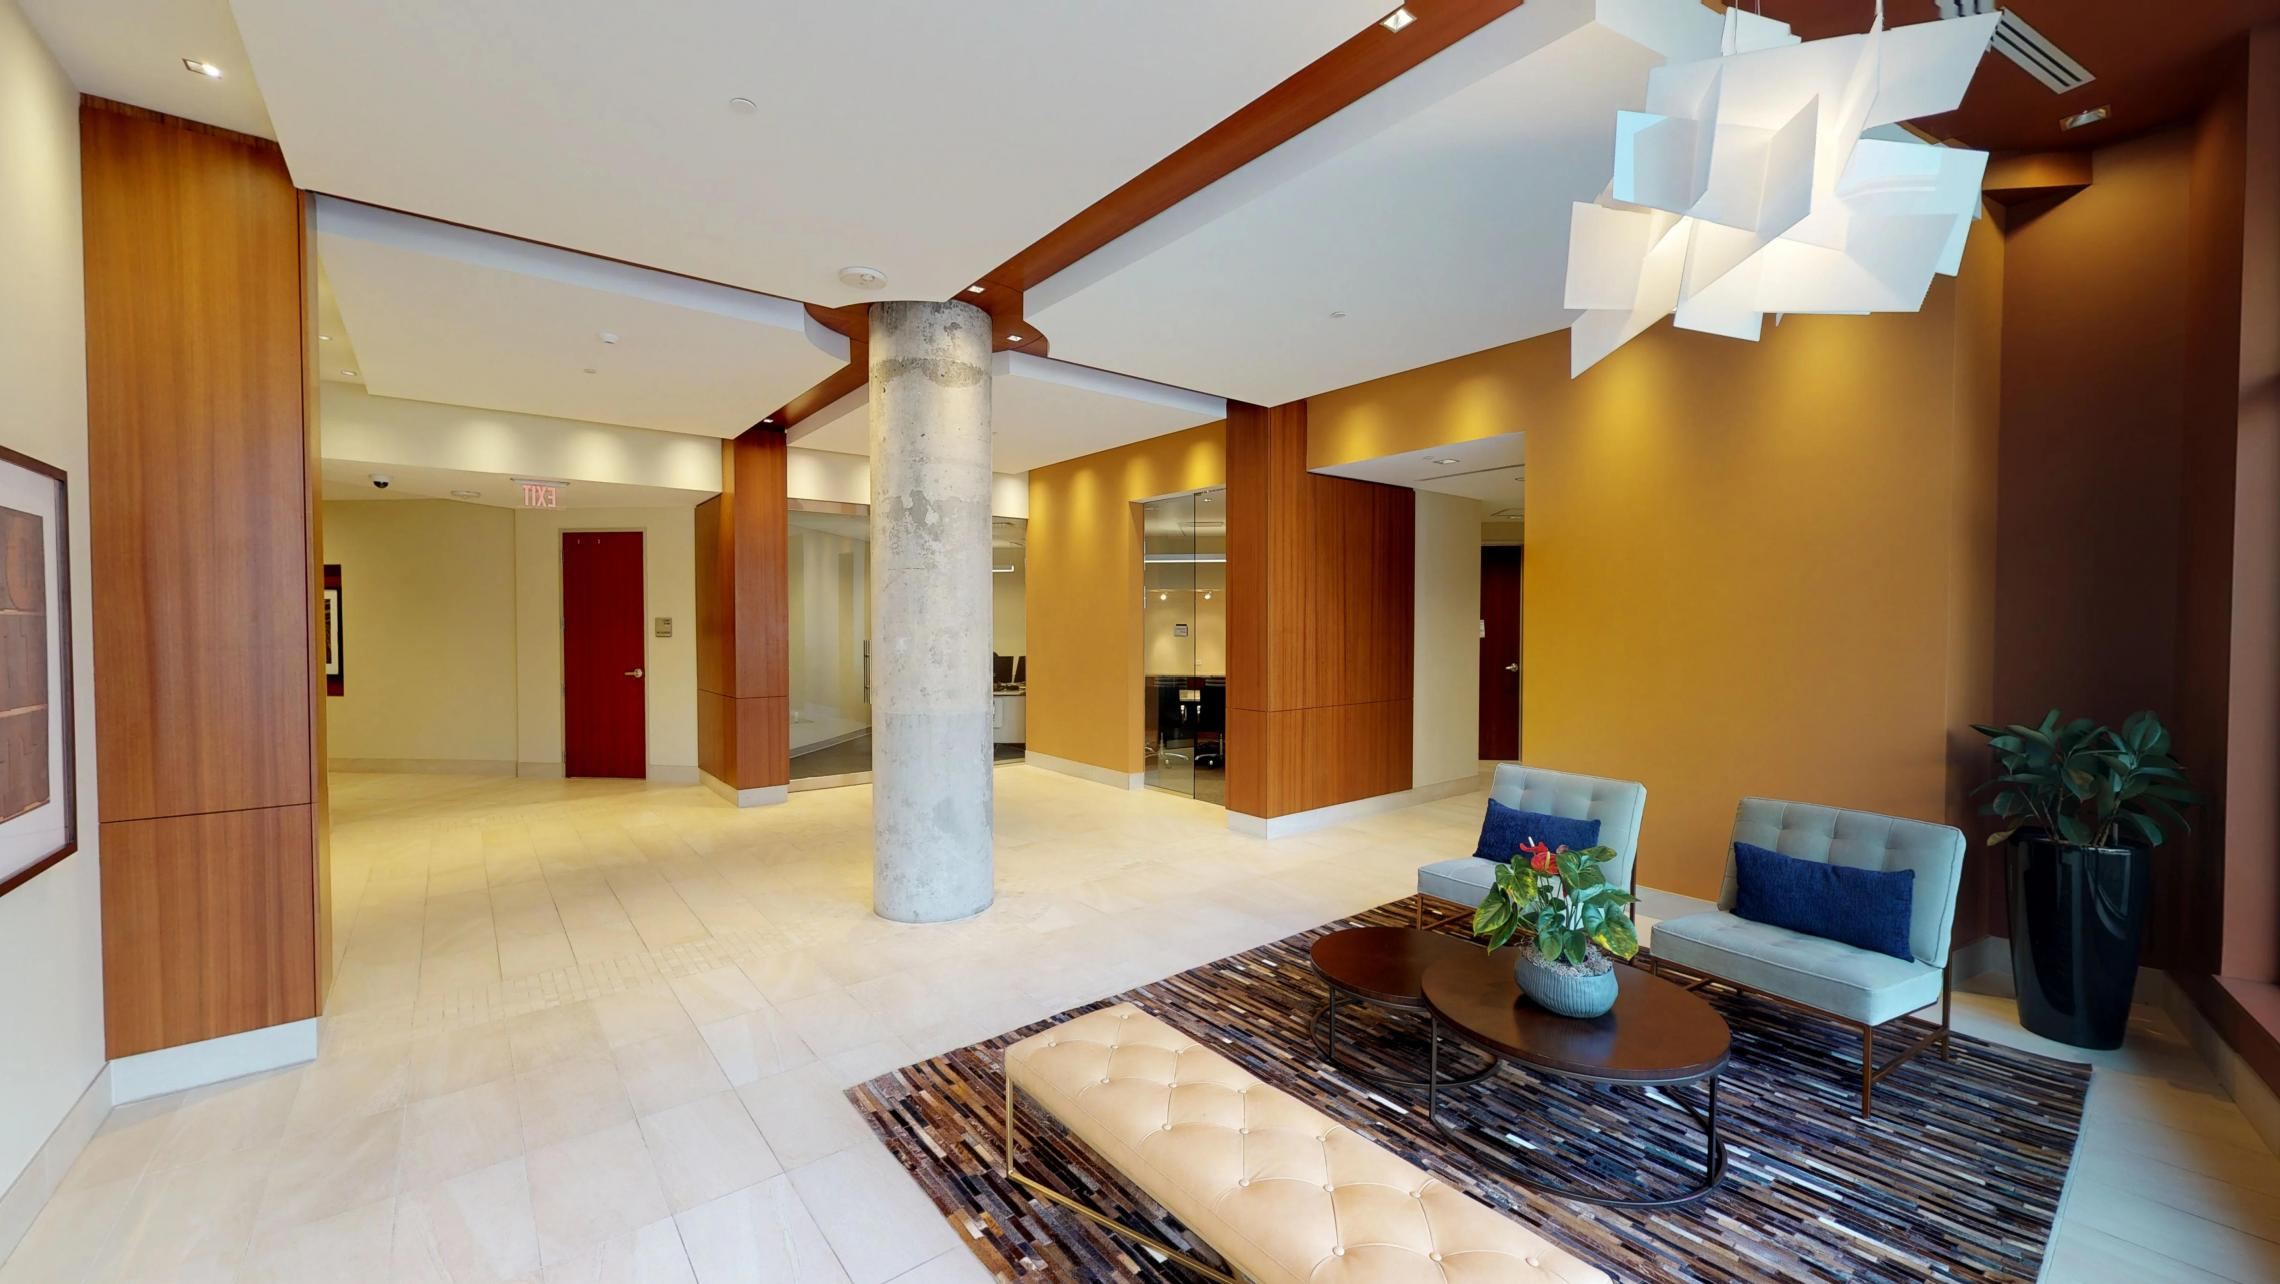 The-Pressman-Apartments-Upscale-Club-room-Modern-Luxury-Downtown-Madison-High-Rise-Lifestyle-Capitol-Square-lobby